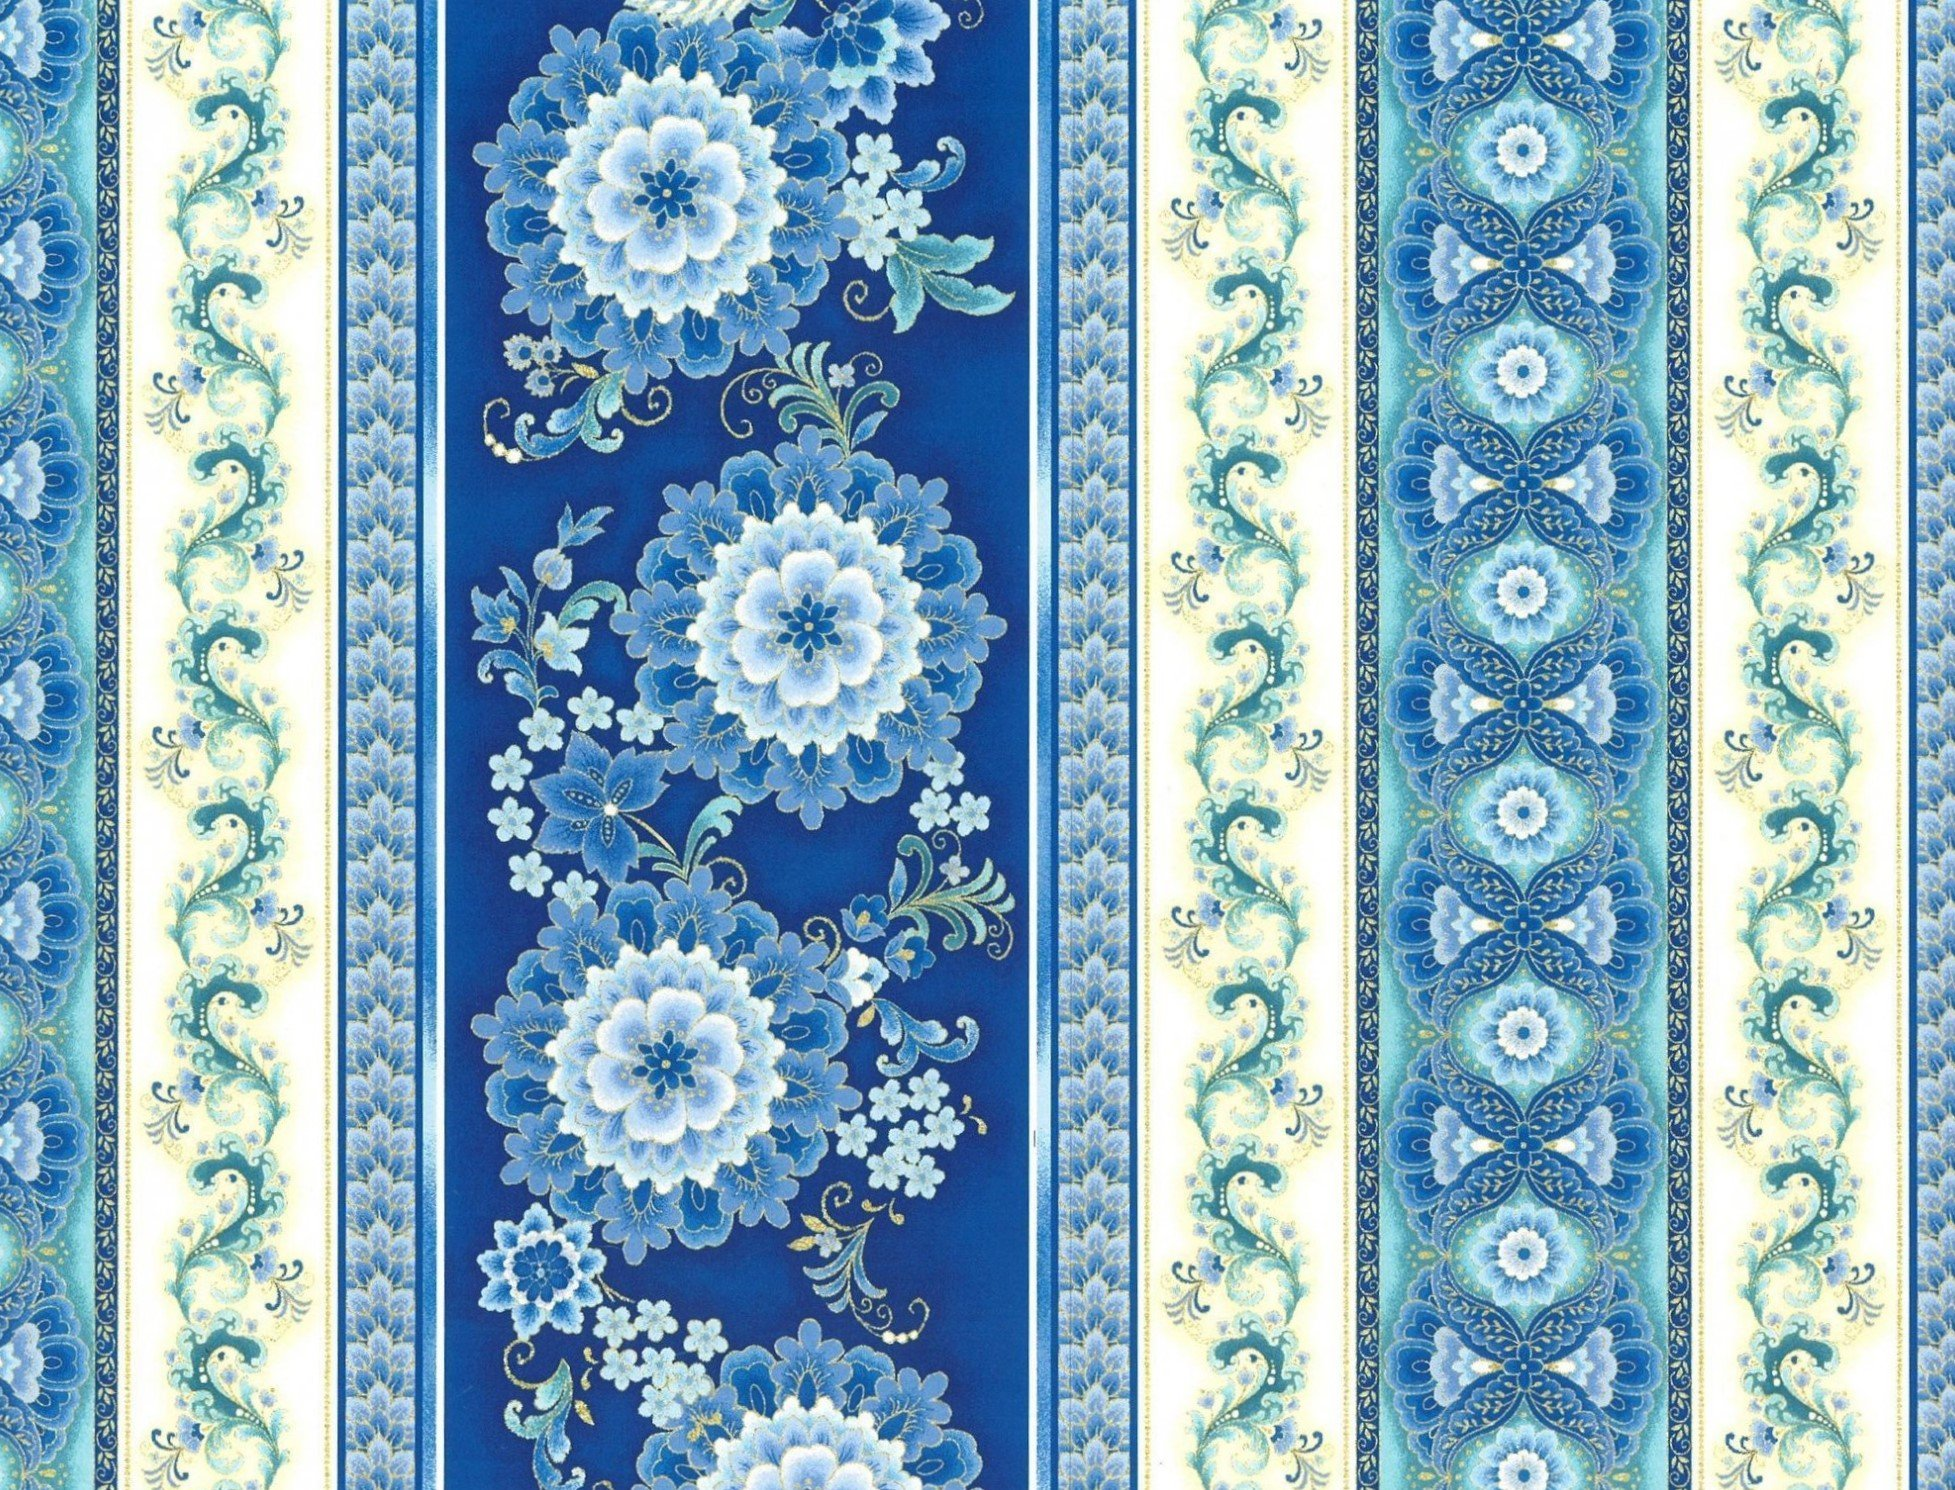 PROMO* HF-Keepsake Calico 1700-02 Blue Floral Stripe